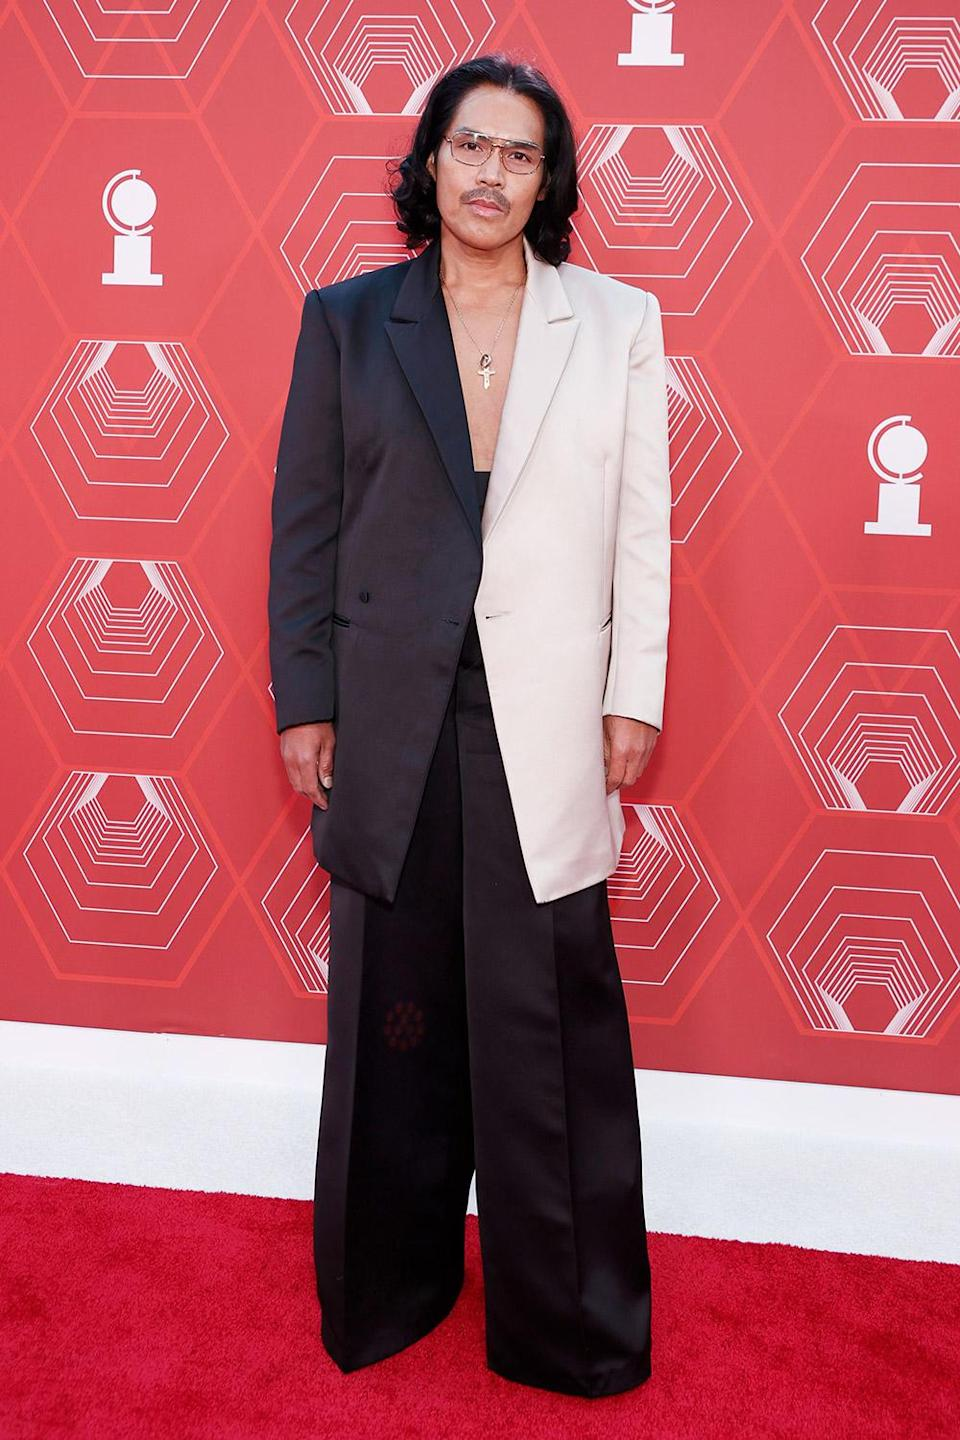 <p>Tony award winner Clint Ramos — nominated again this year for best costume design for <em>The Rose Tattoo </em>and best scenic design of a play for <em>Slave Play — </em>arrives in a two-tone suit. </p>